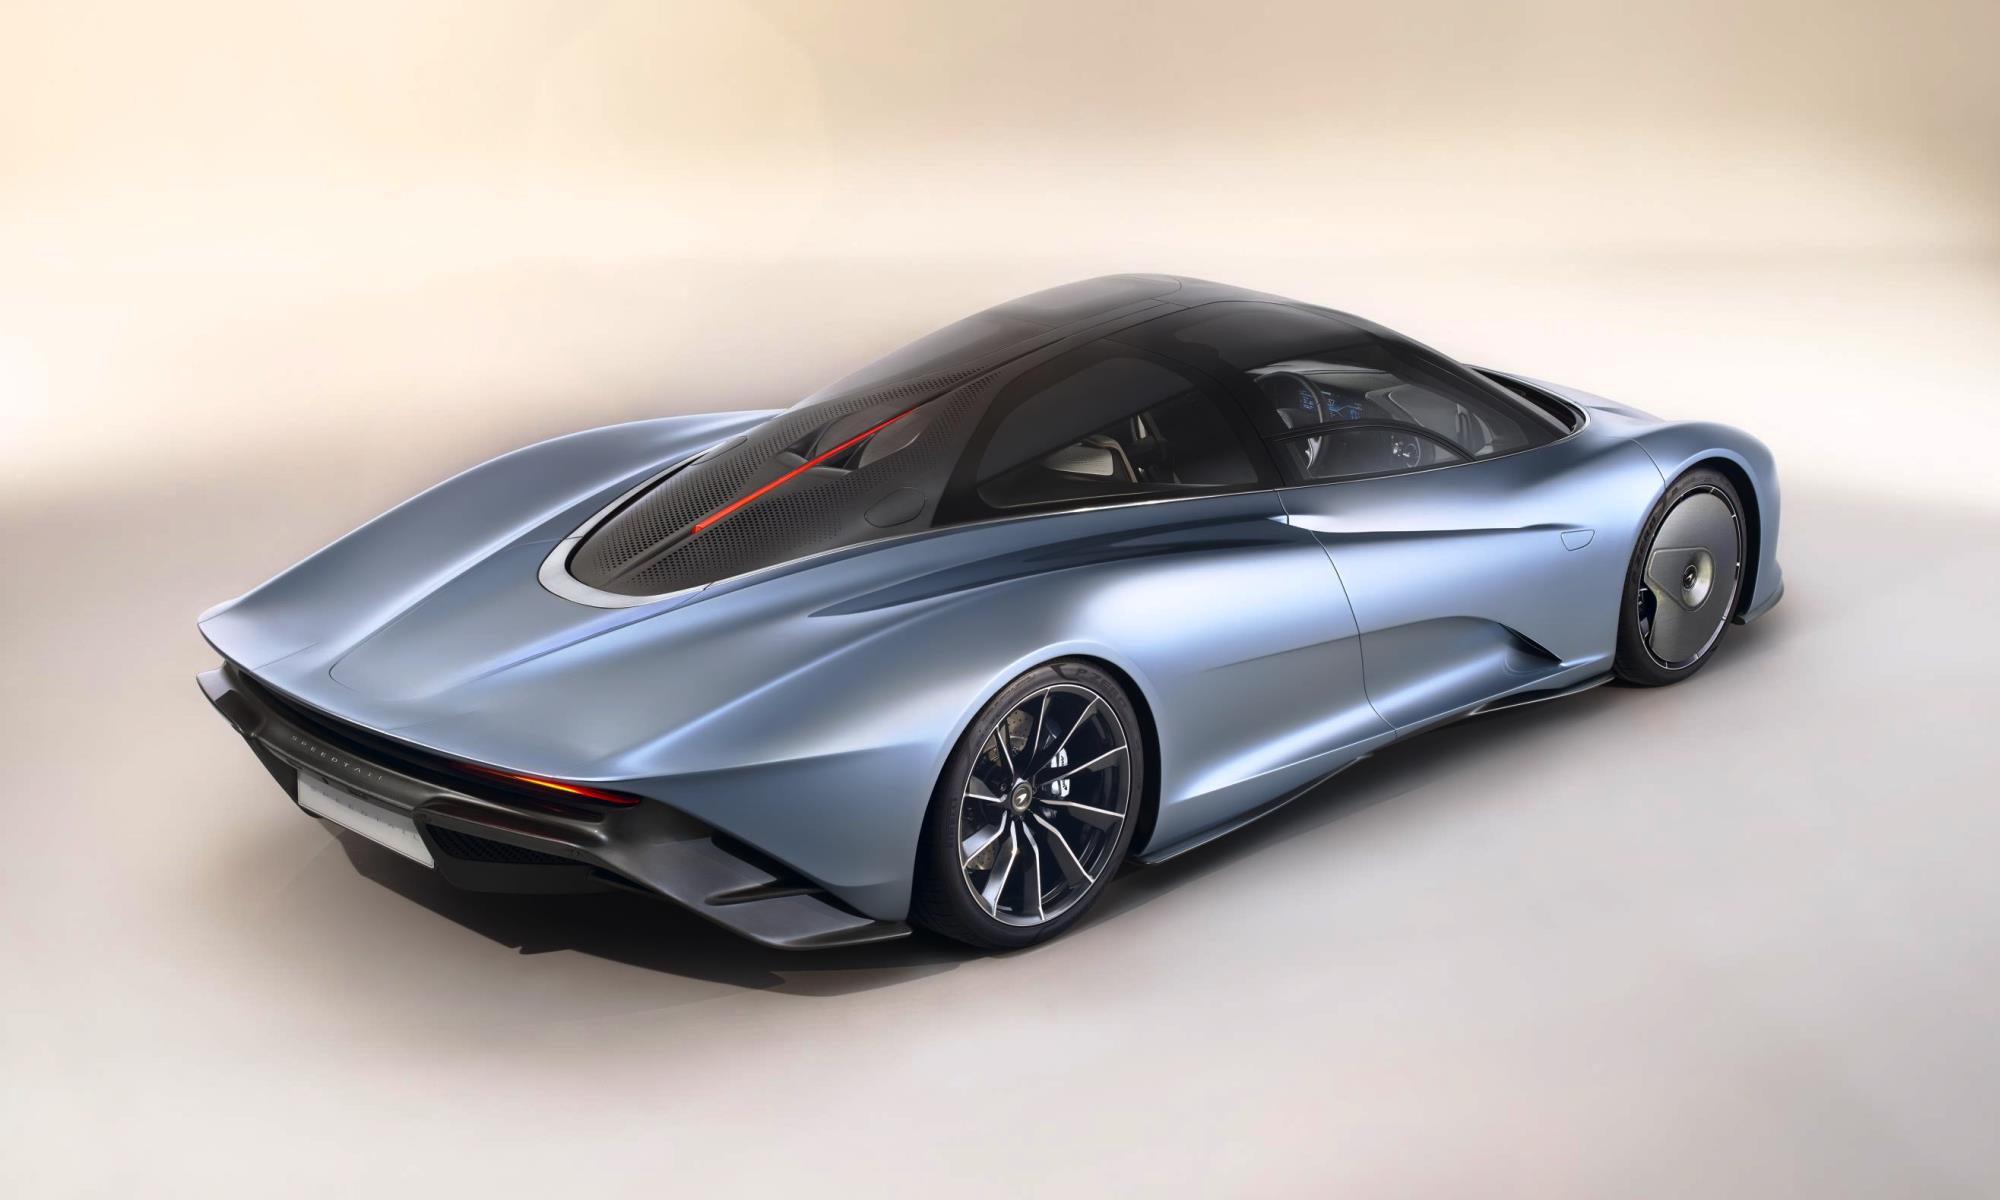 McLaren Speedtail hypercar rear